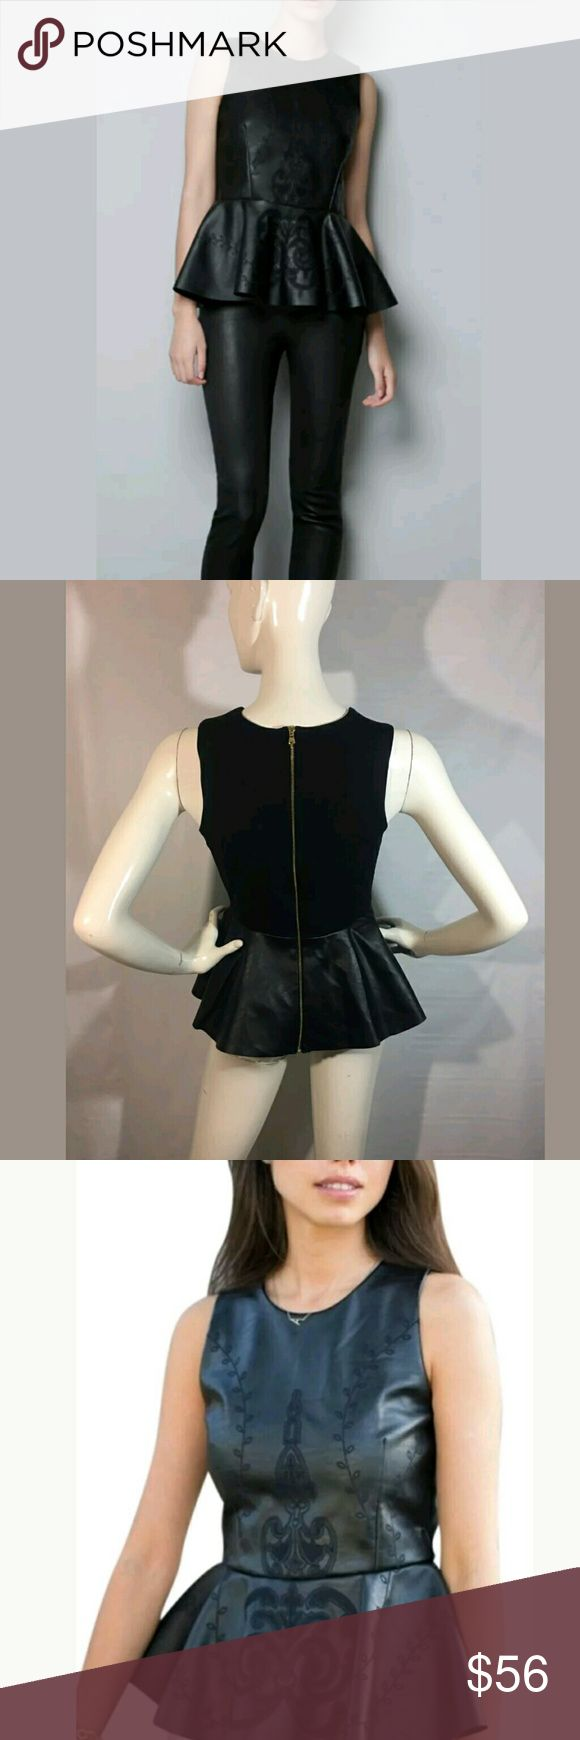 Zara Peplum Top Faux Leather Embroidered Zara Peplum Top Size Medium Faux Leather Embroidered Black-- New top.   16 inches pit to pit.  23.5 inches long.   LB Zara Tops Blouses